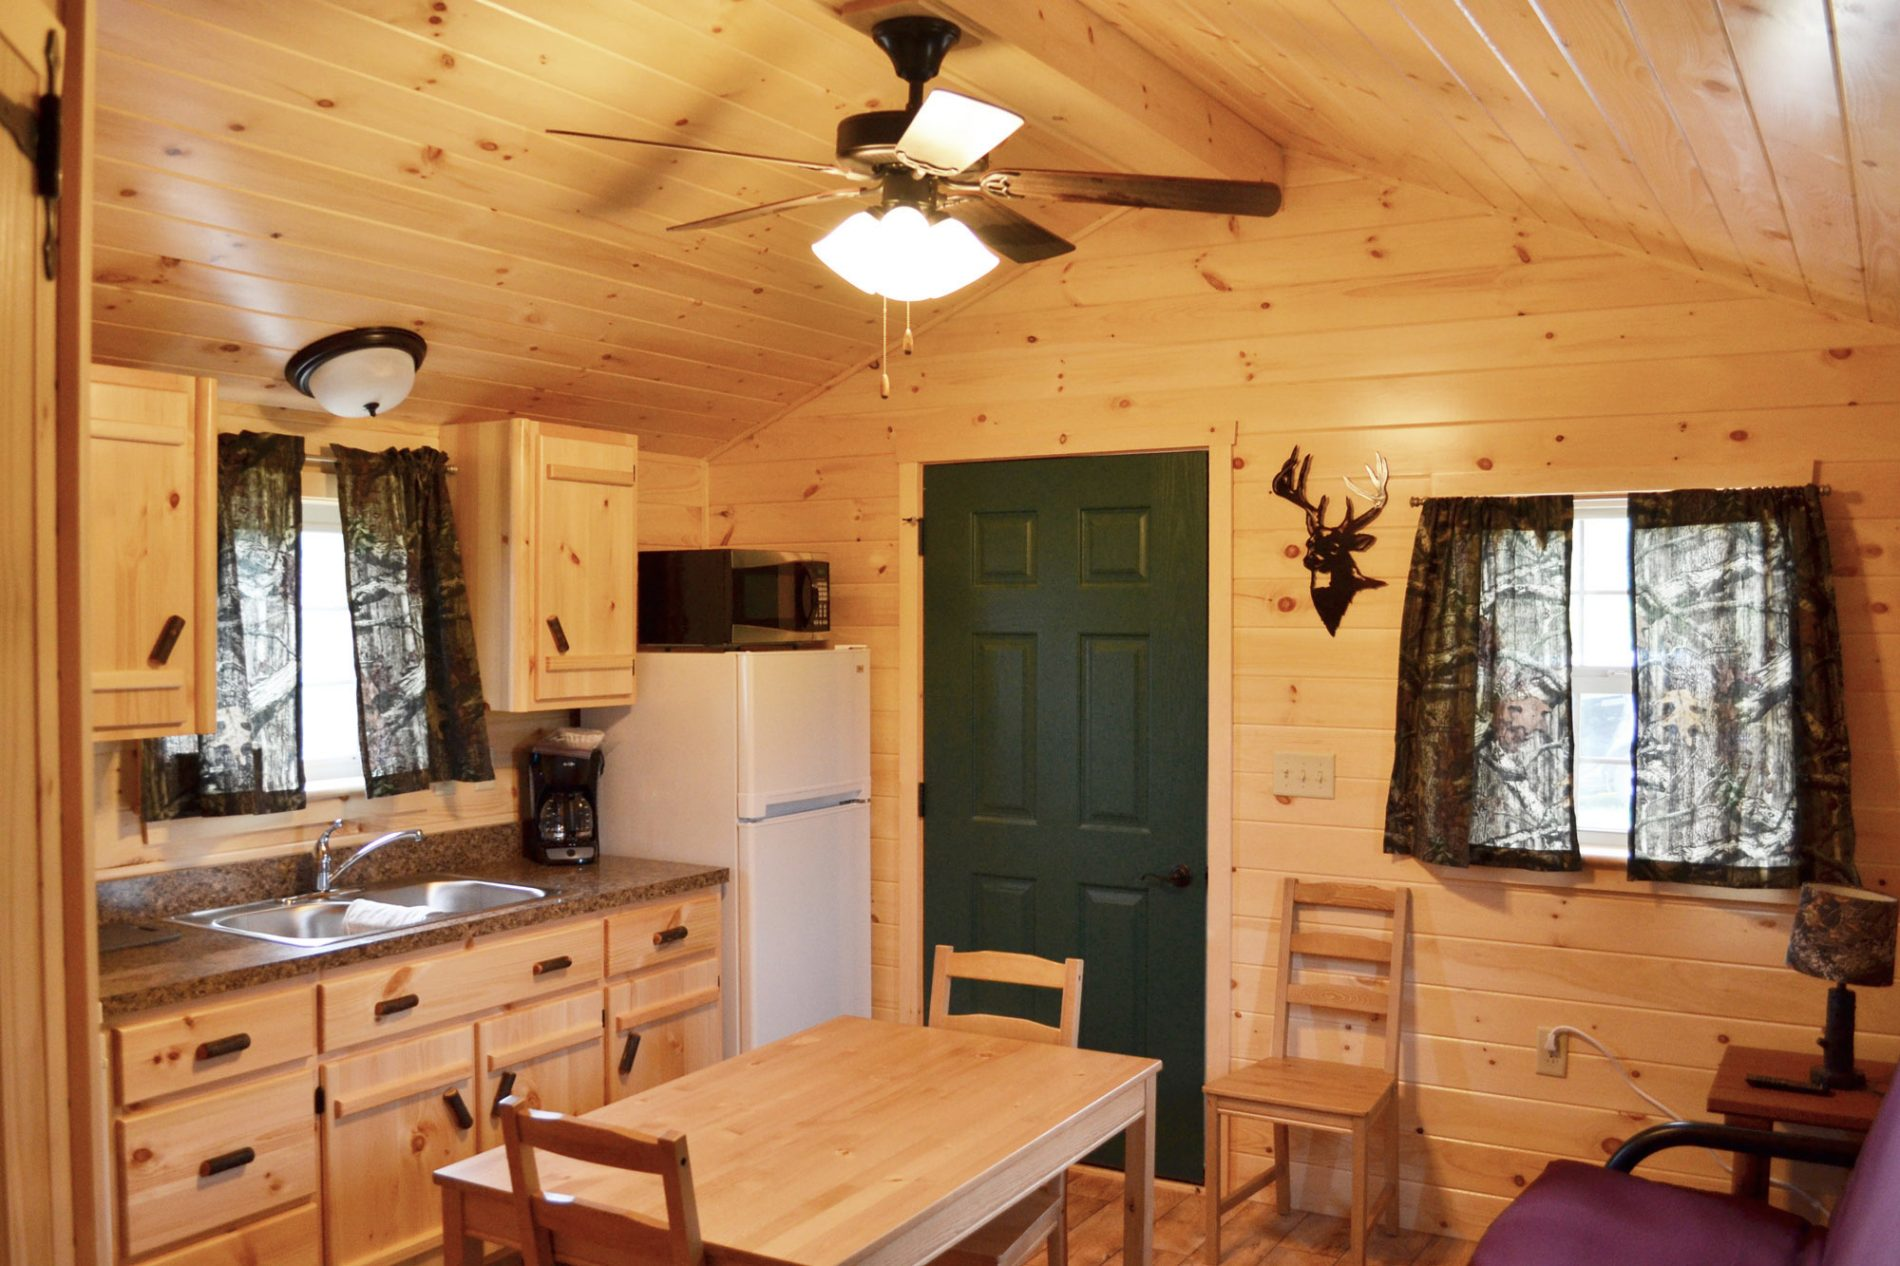 Tiny House Floor Plans Small Cabins Tiny Houses Small: Hunting Lodge Plans